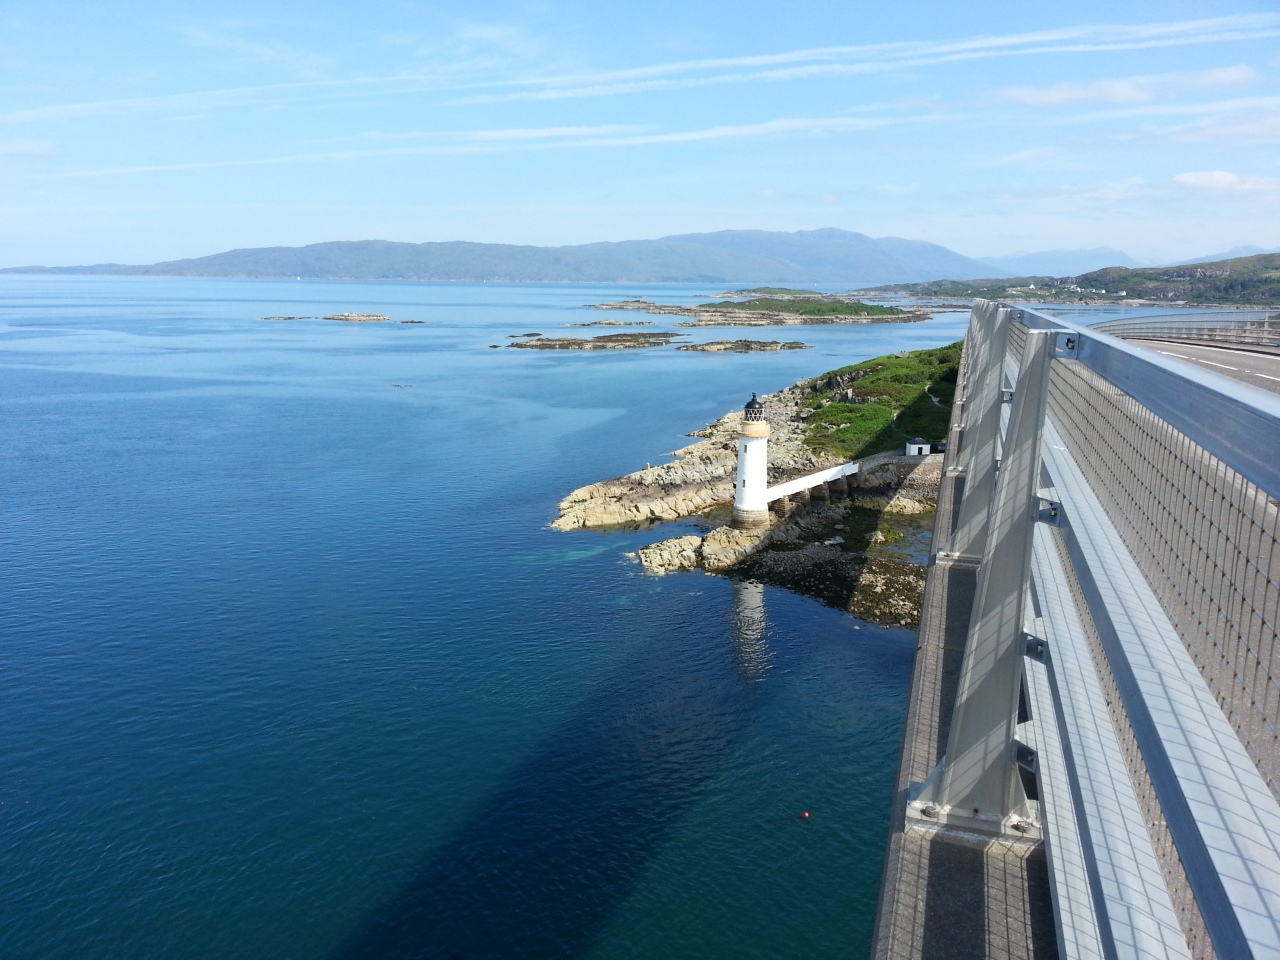 A ferry to Skye and a bridge back to the mainland